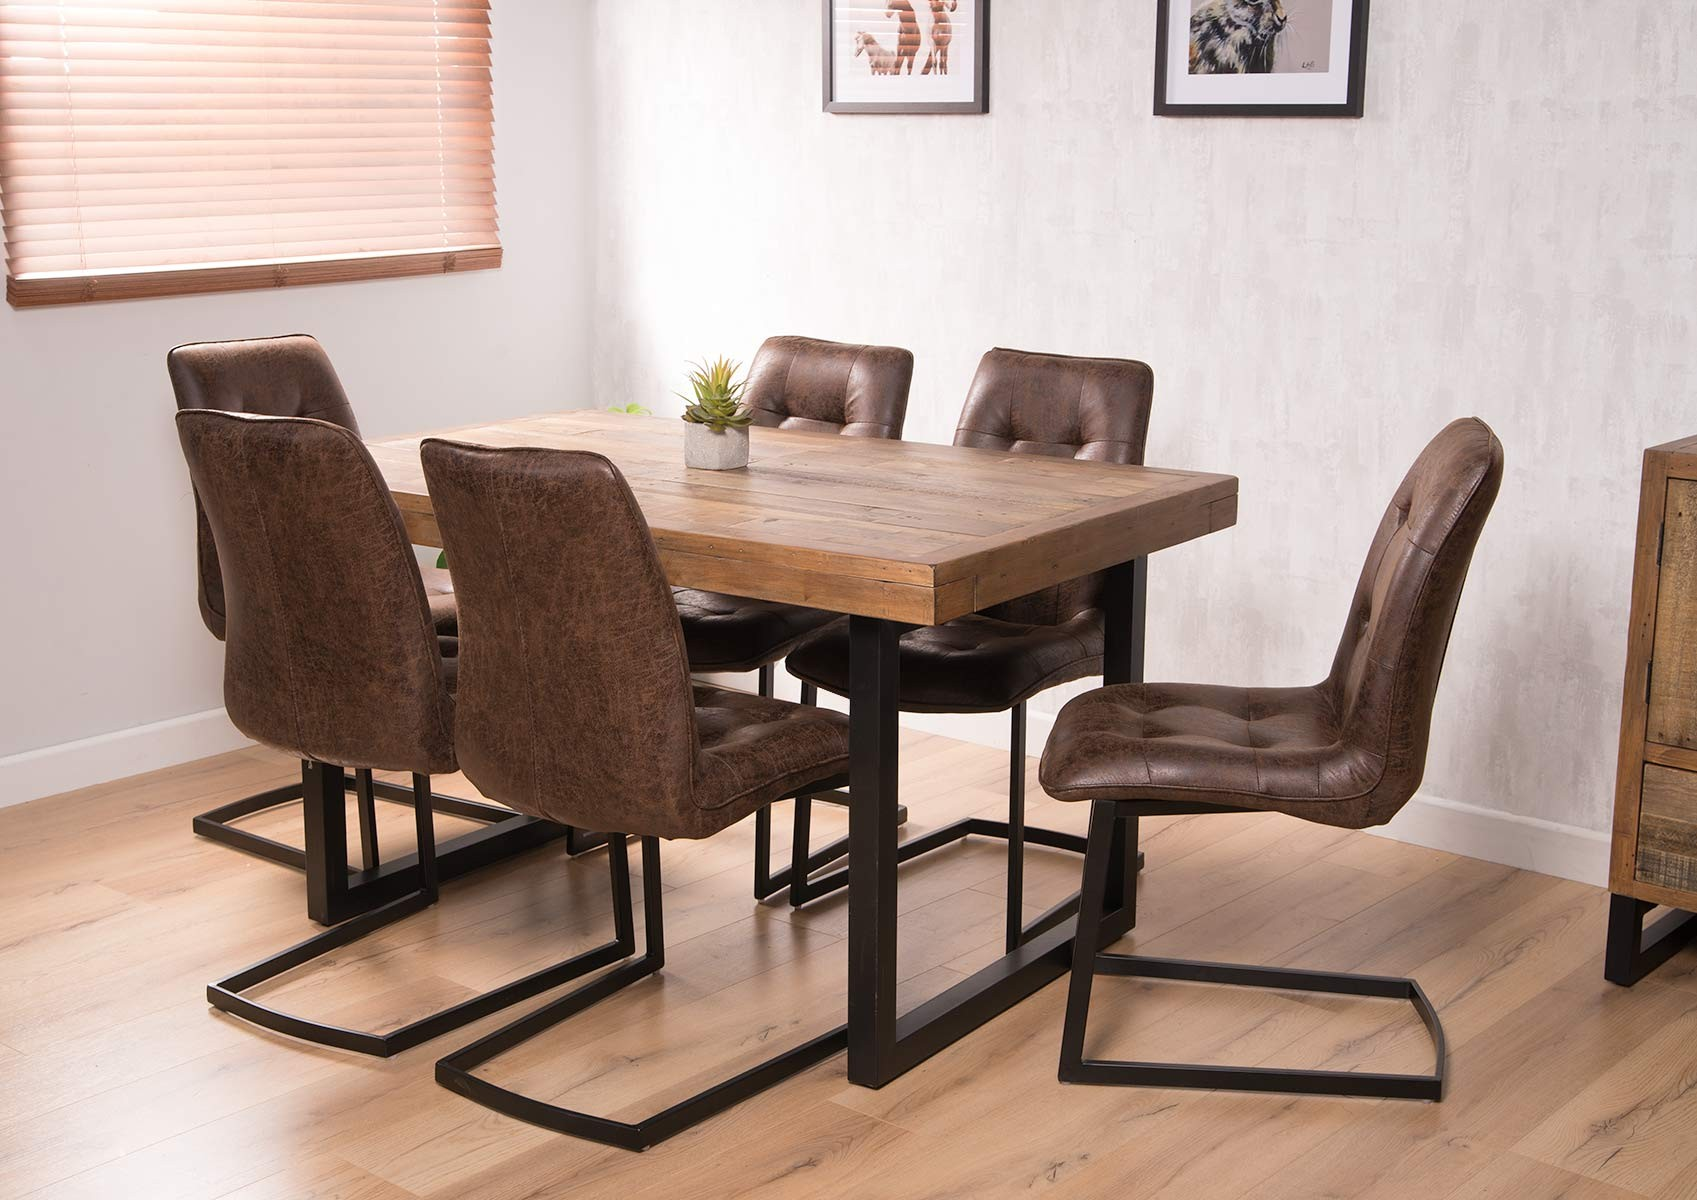 Aged Leather Cantilever Dining Chair Brown Casa Bella